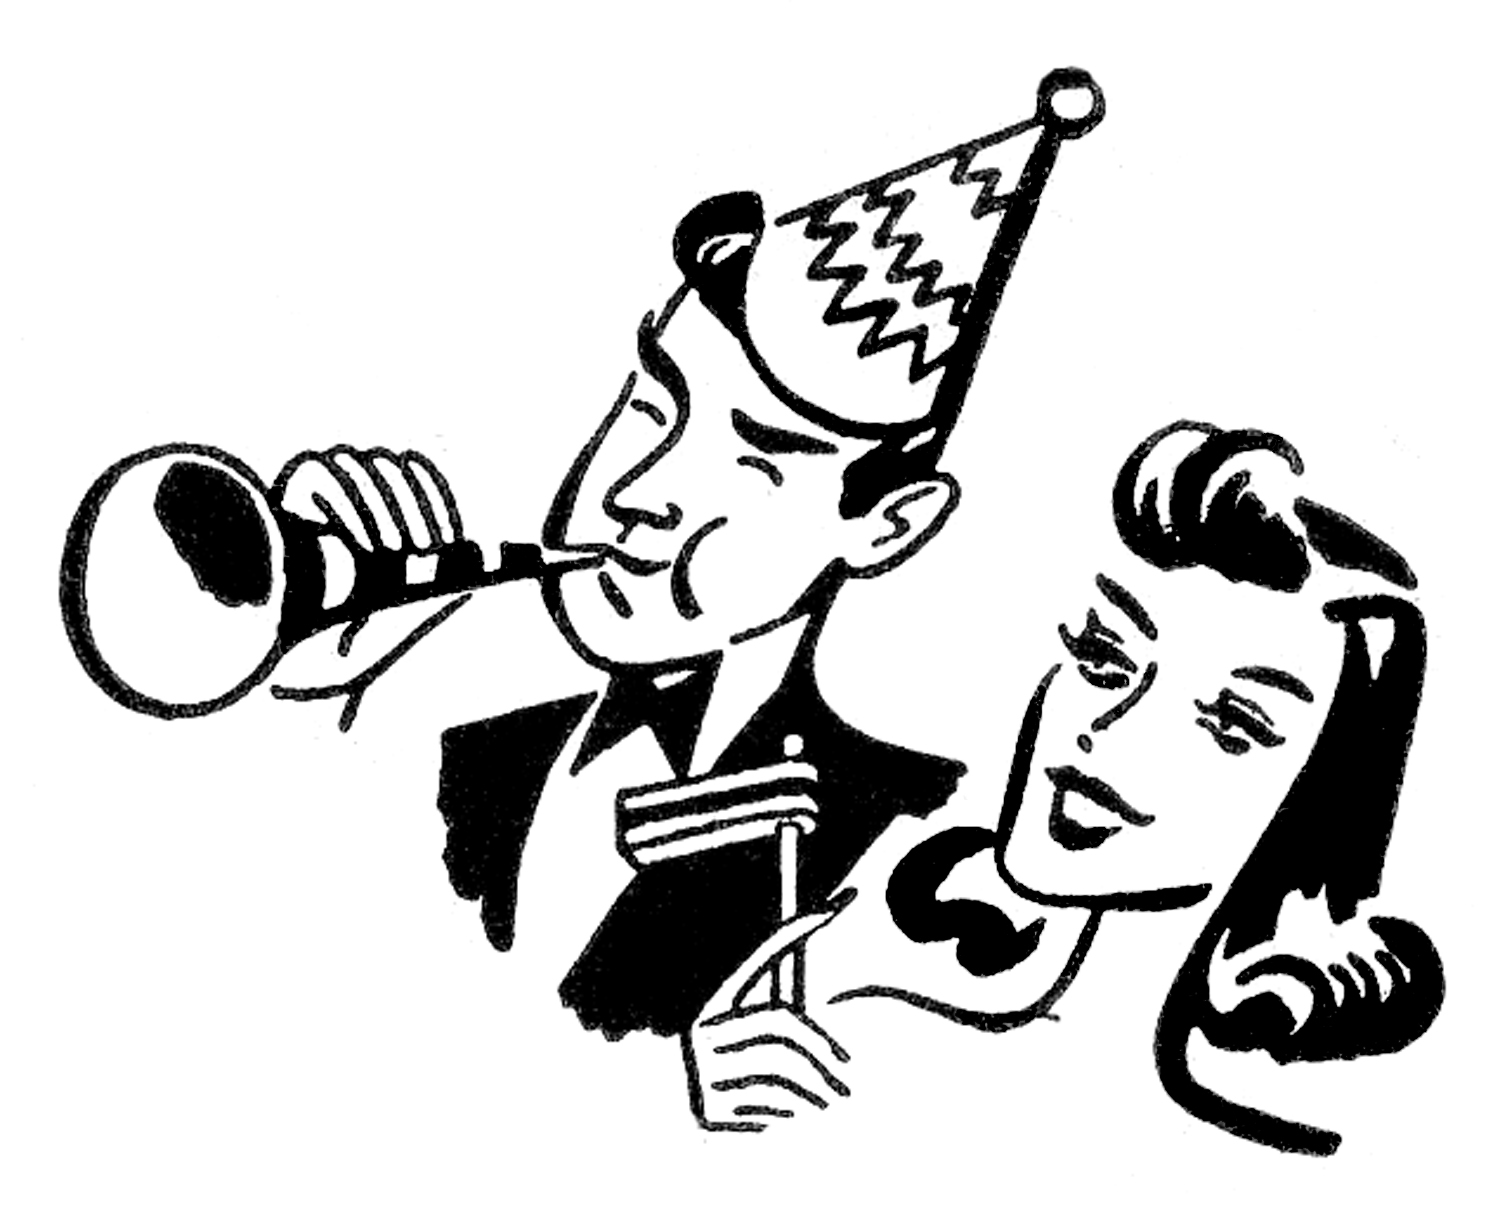 New years eve images. 2016 clipart black and white